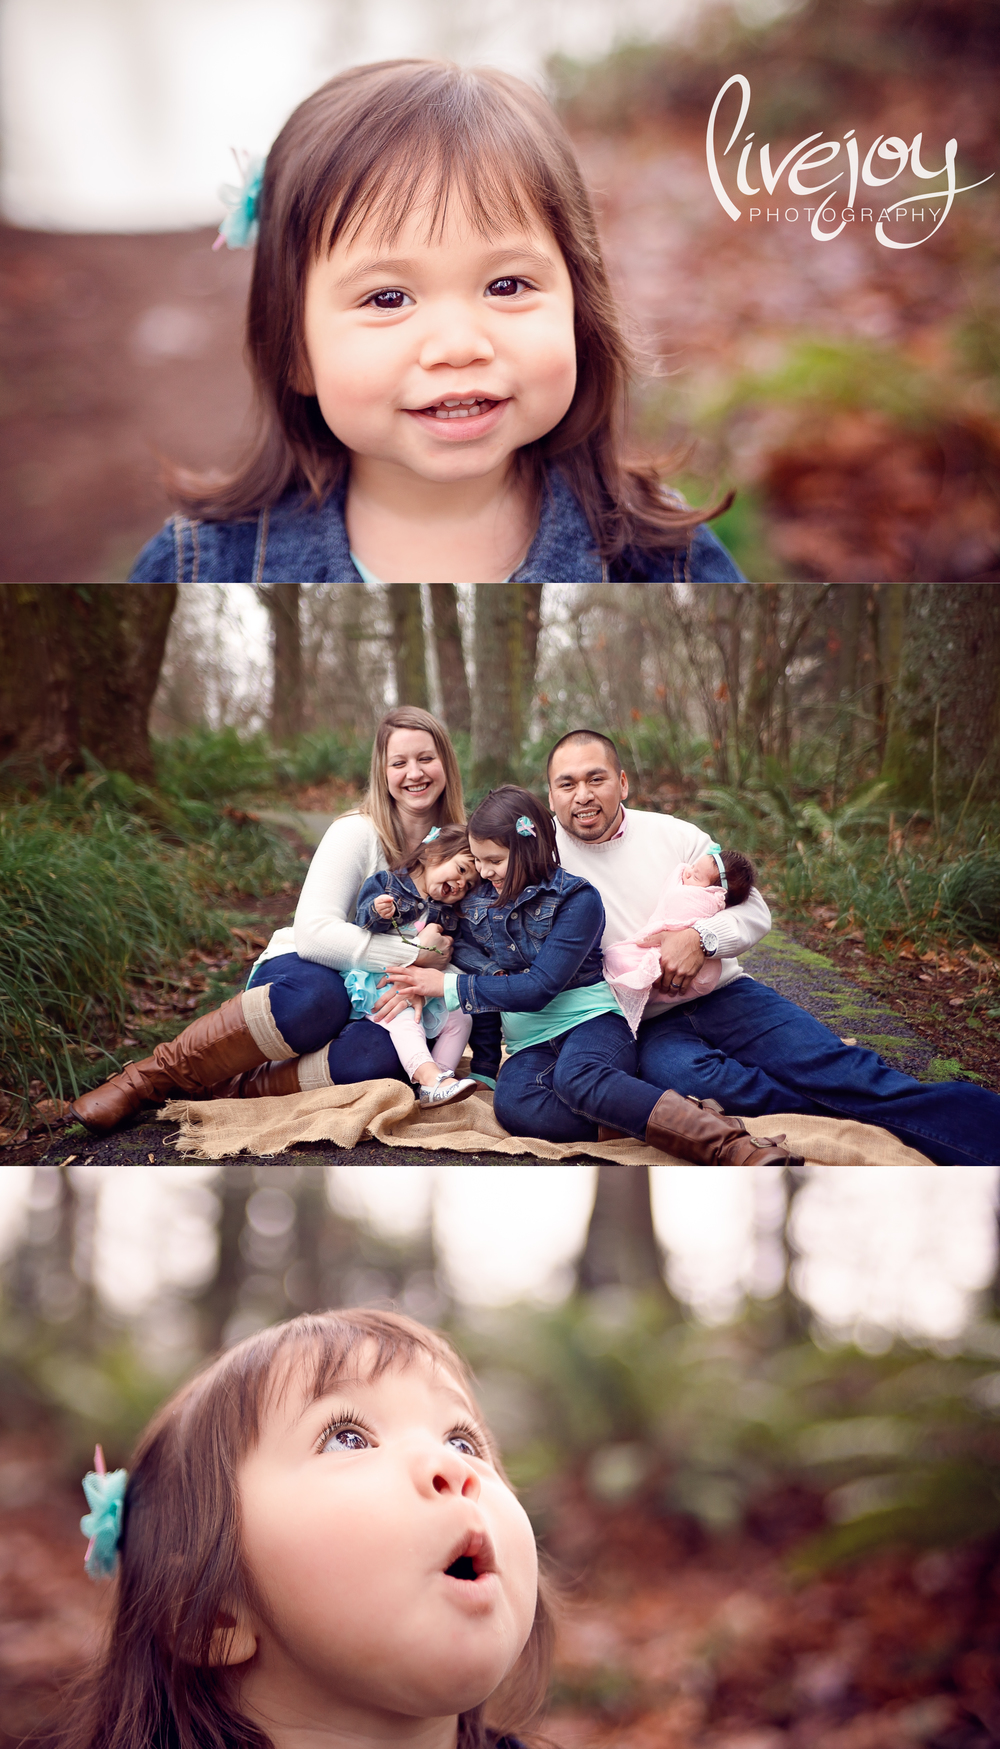 18 Months Outdoor Baby Photos | Oregon | LiveJoy Photography